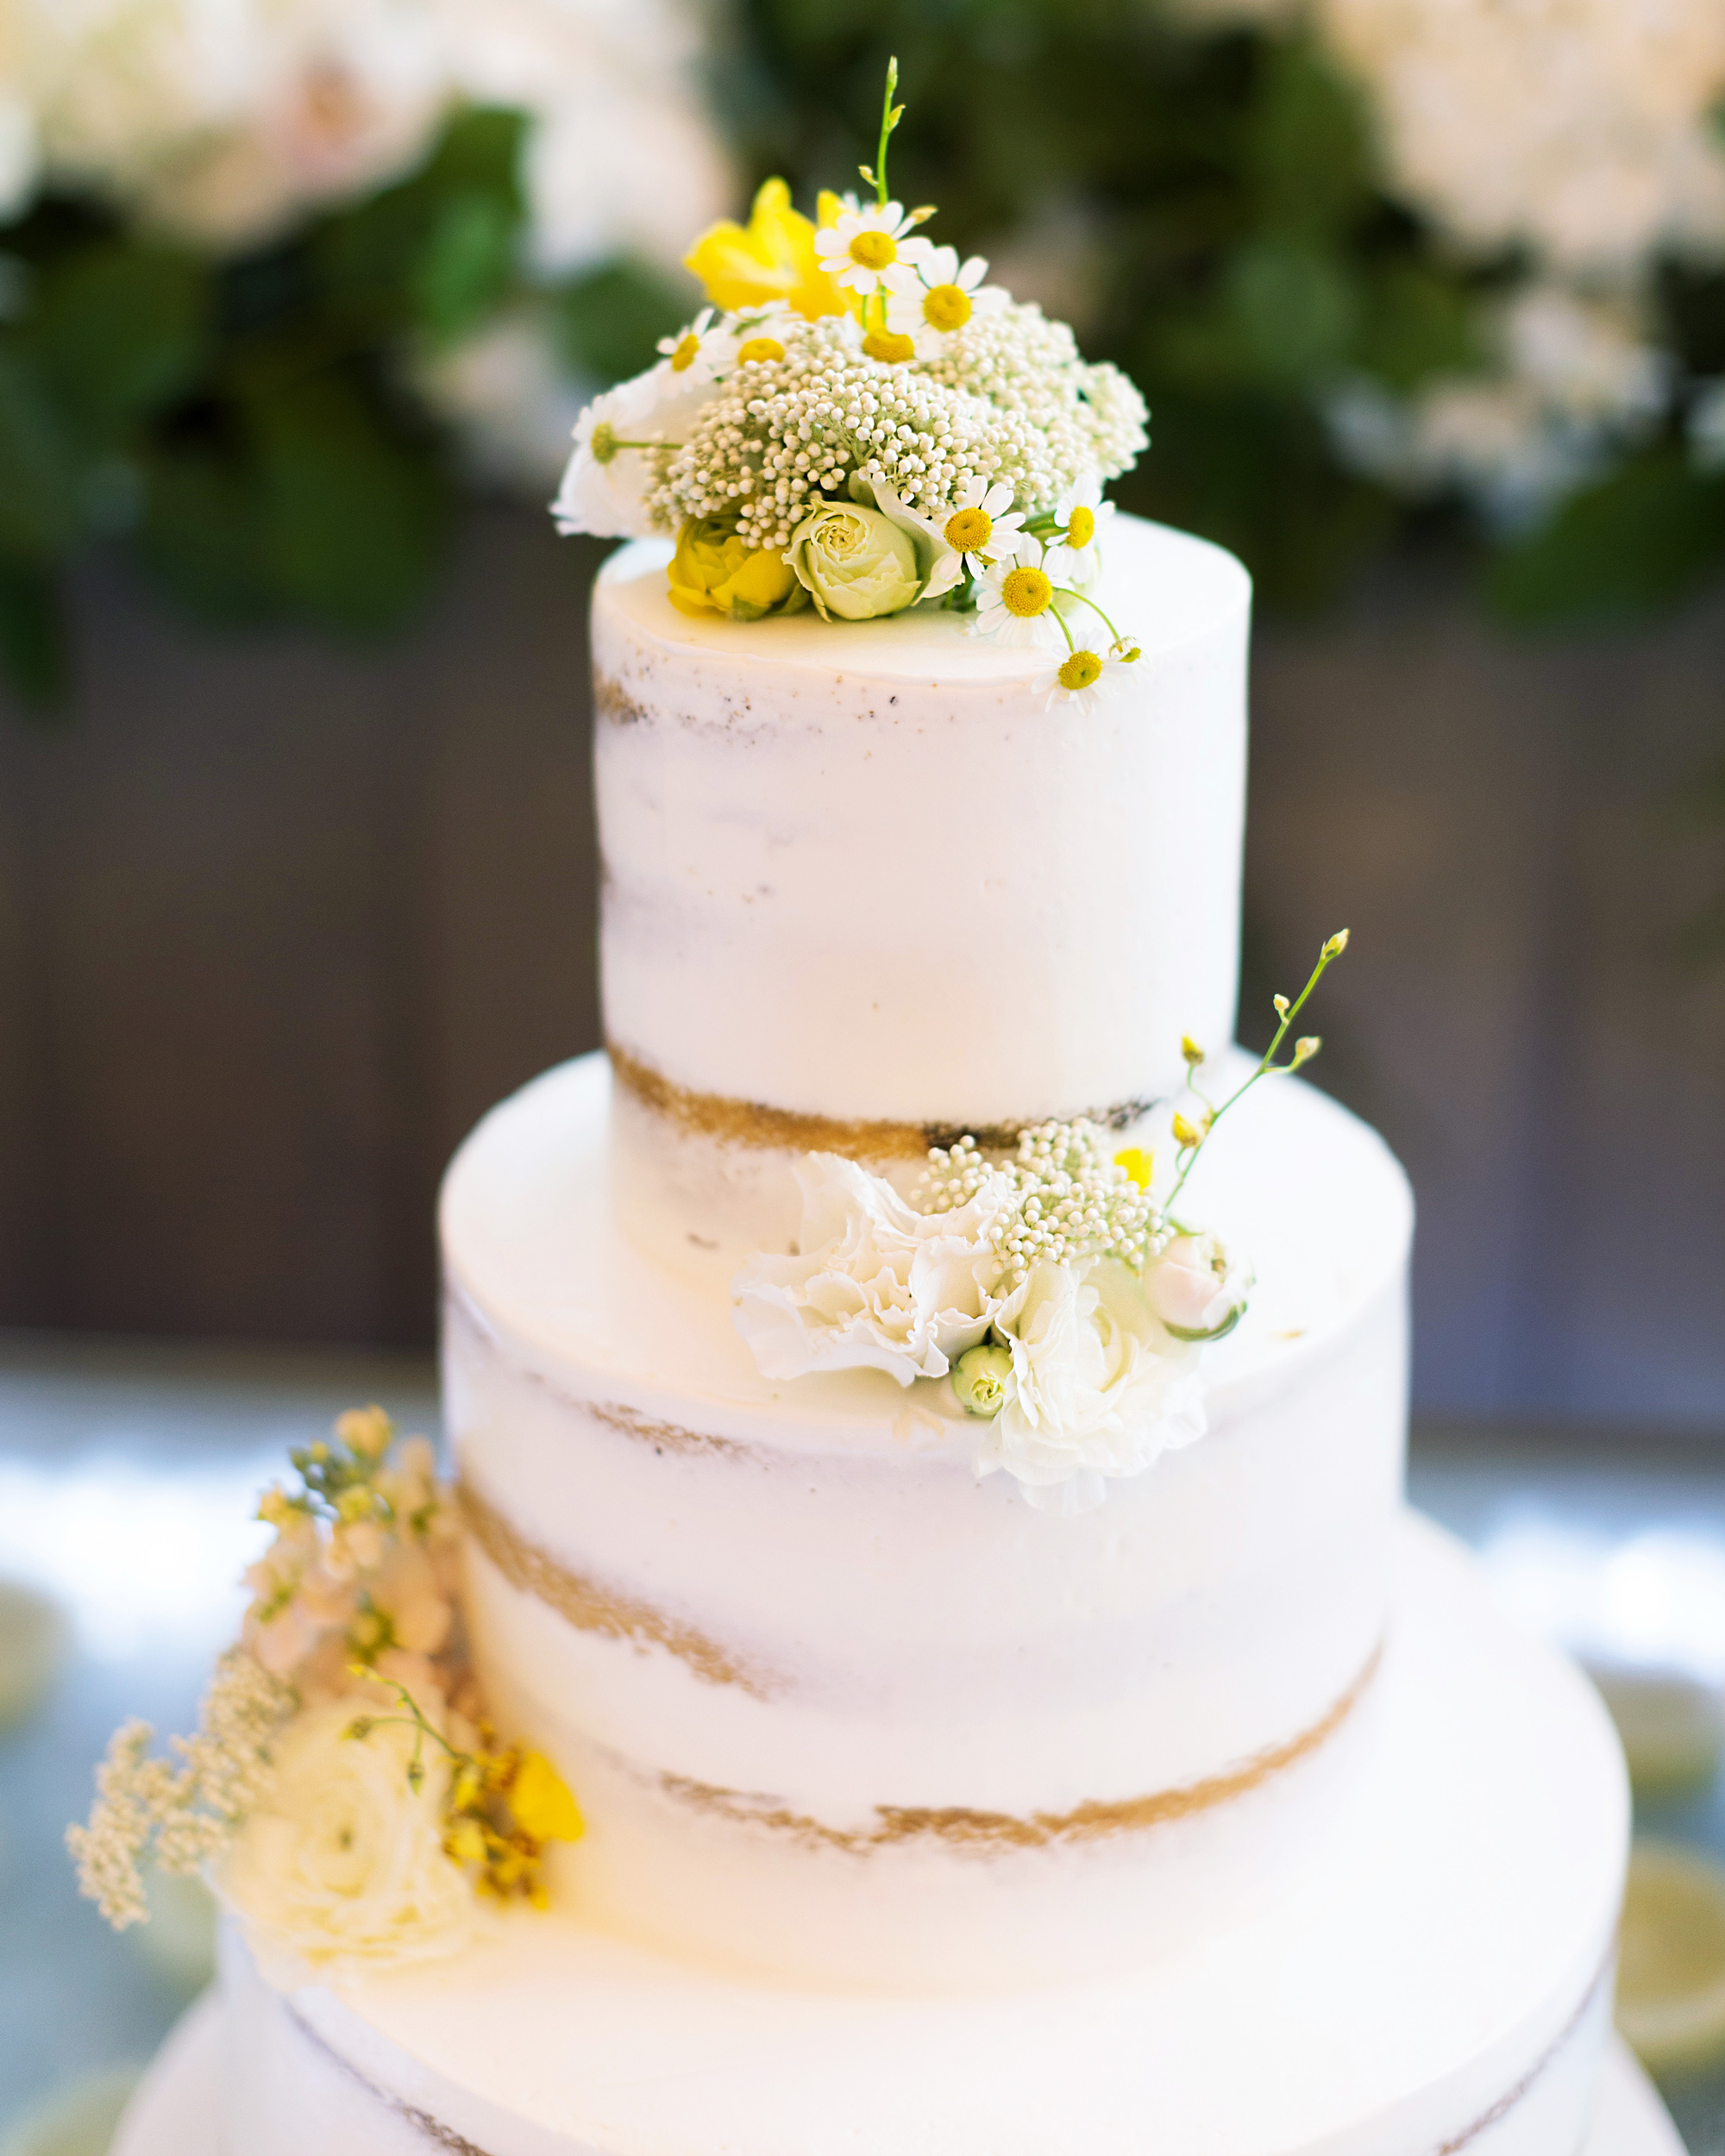 45 Wedding Cakes With Sugar Flowers That Look Stunningly: 44 Wedding Cakes With Fresh Flowers